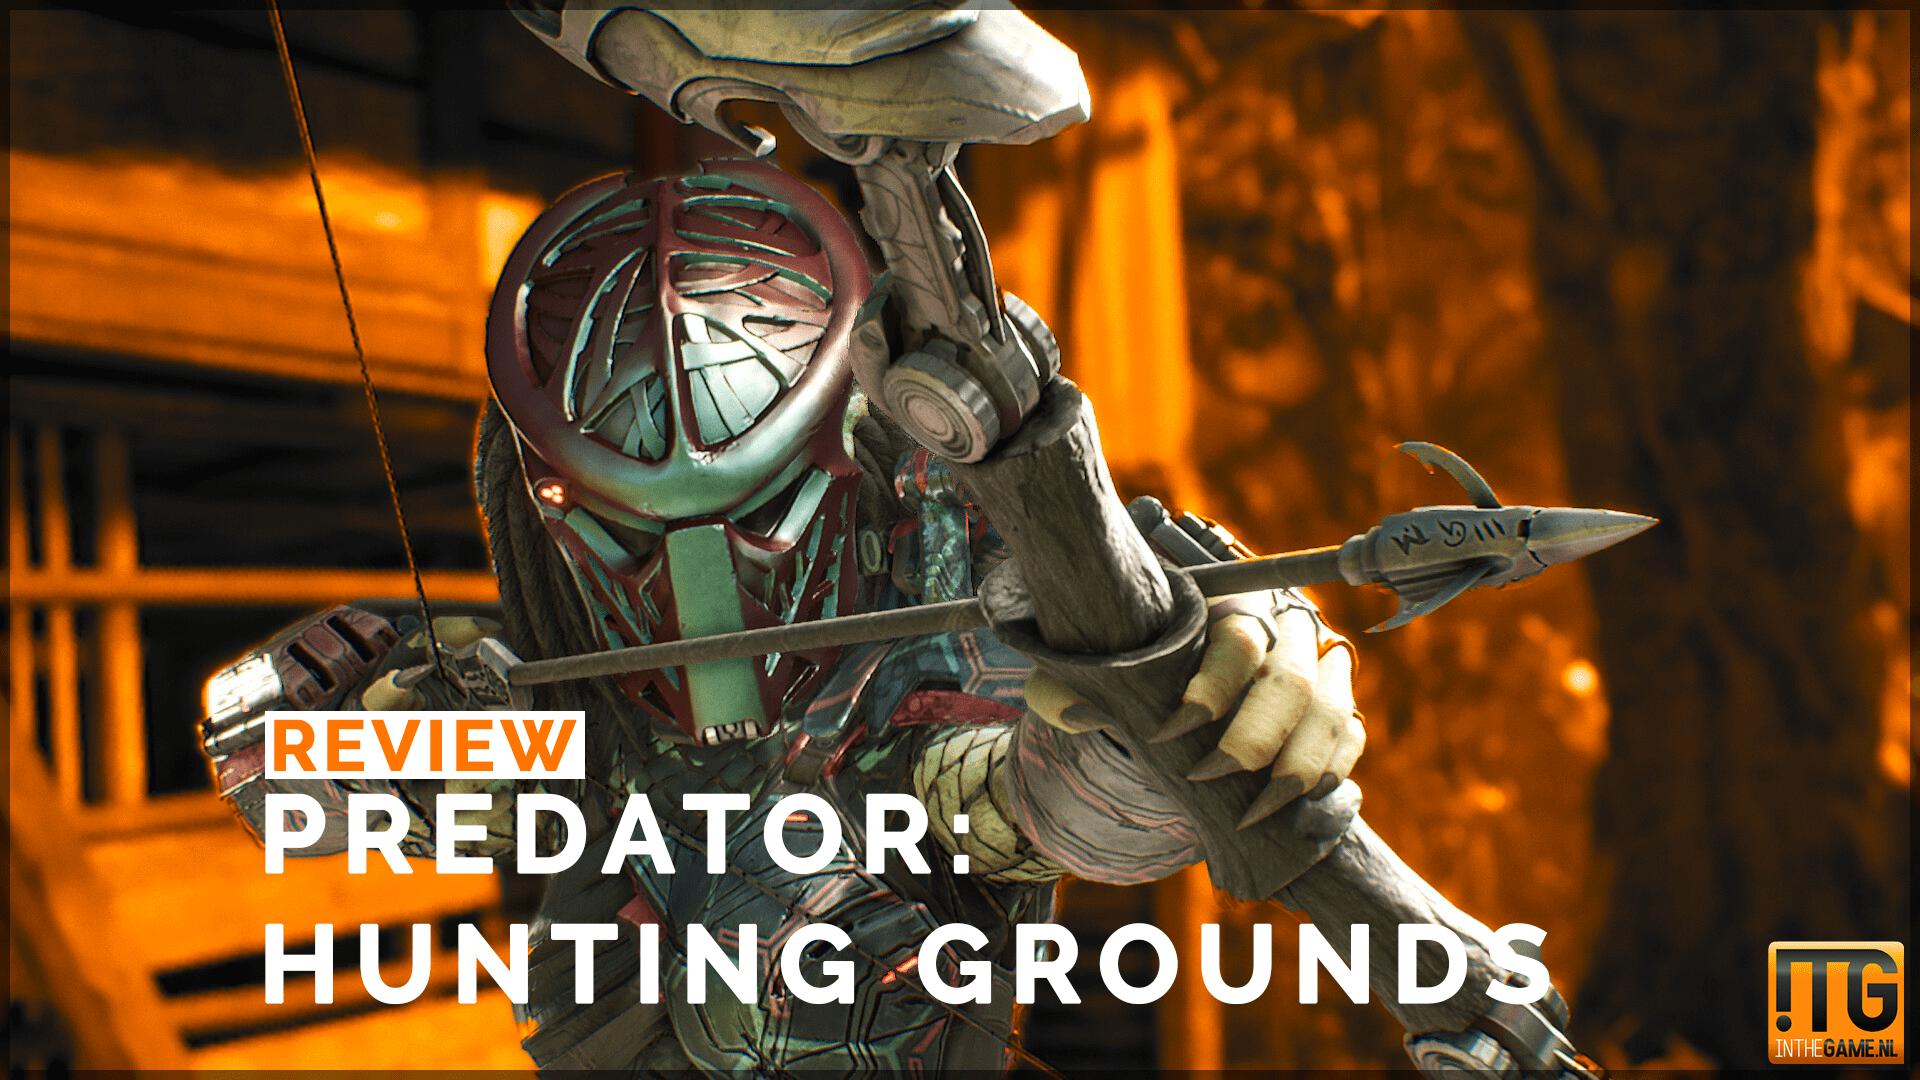 Review: Predator Hunting Grounds